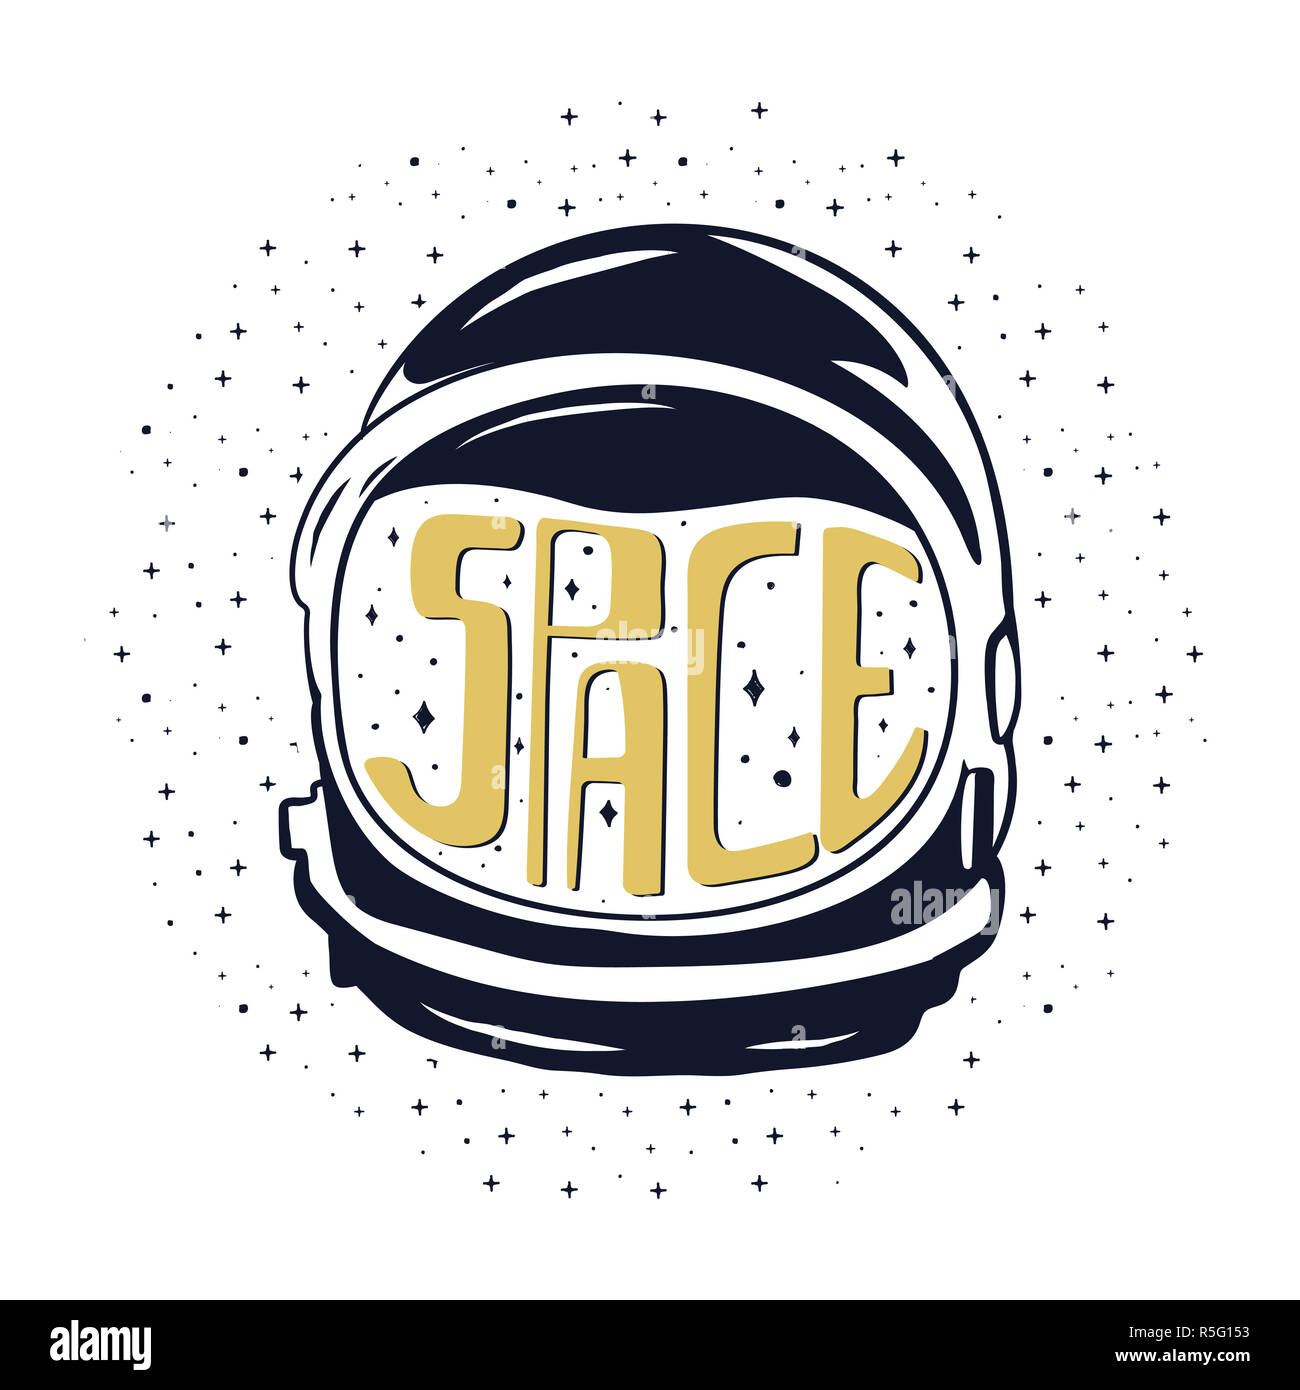 Vintage hand drawn astronaut helmet to space travel with custom texts - space and stars. Stock emblem isolated on white background. Good for T-Shirts, mugs - Stock Image